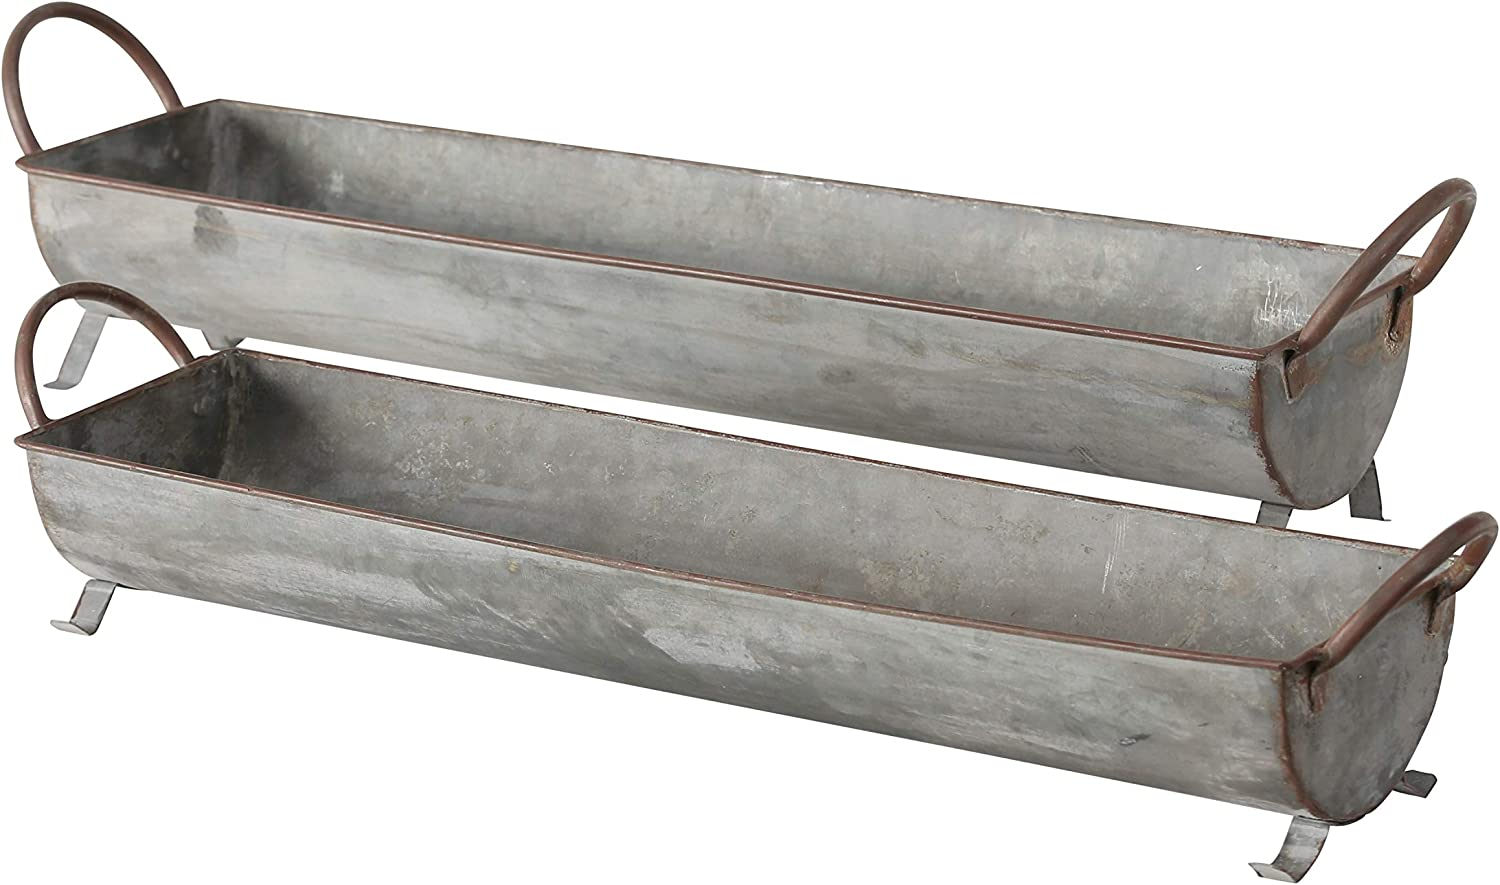 WHW Whole House Worlds Farmer's Market Galvanized Metal Basket Tray Planters, Set of 2, Long Trough Shaped, Zinc, 28 and 25 Inches, for Container Gardens